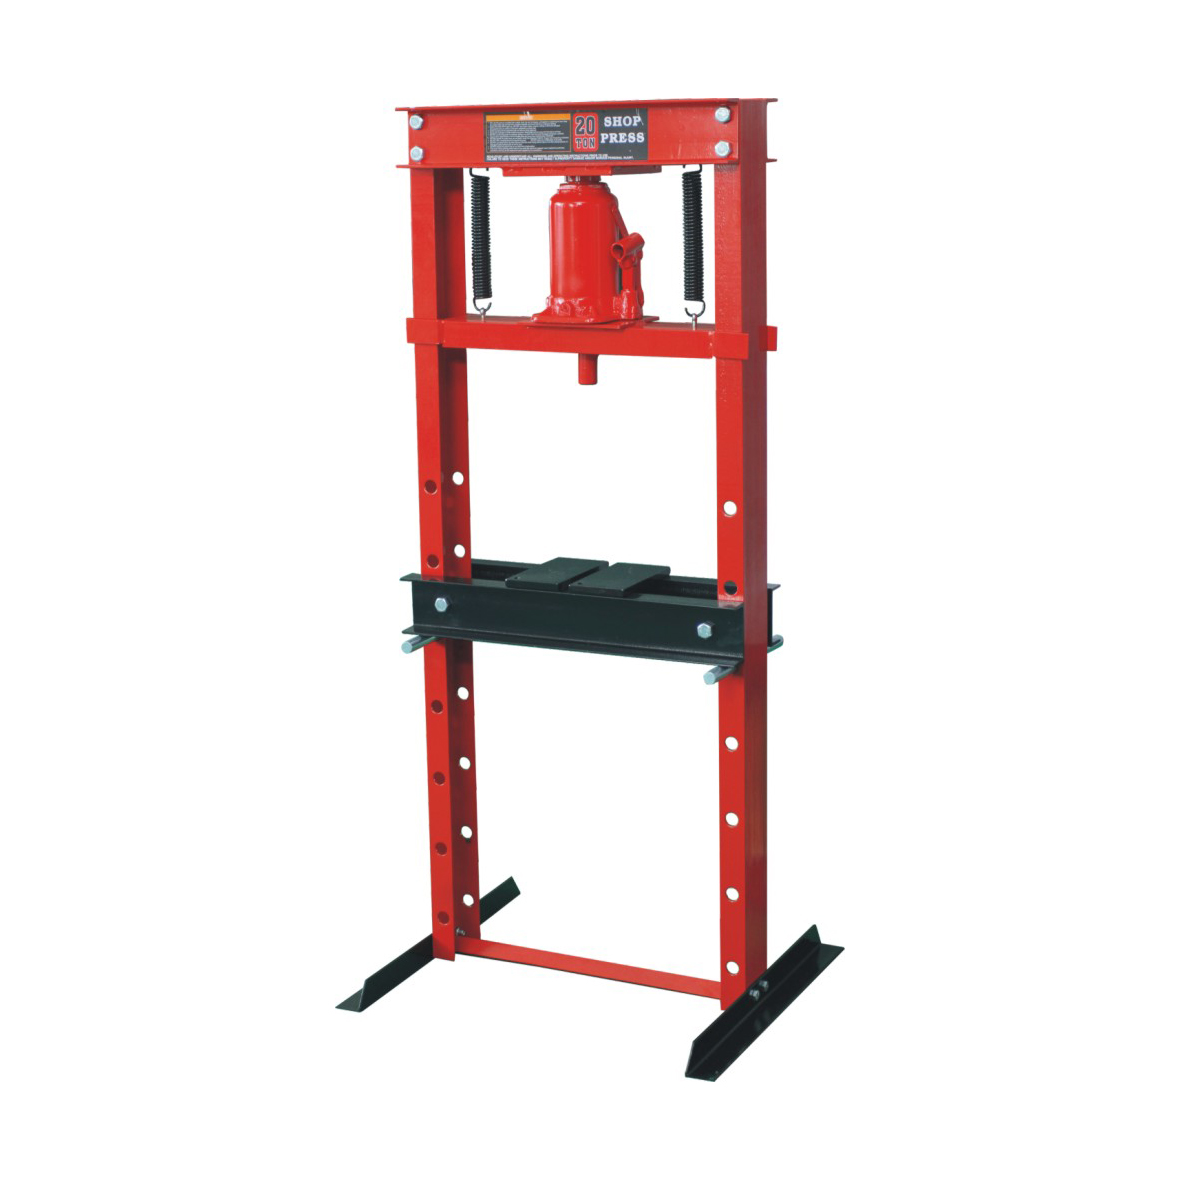 0901C Wholesale Hydraulic /Pneumatic shop press 20T Featured Image